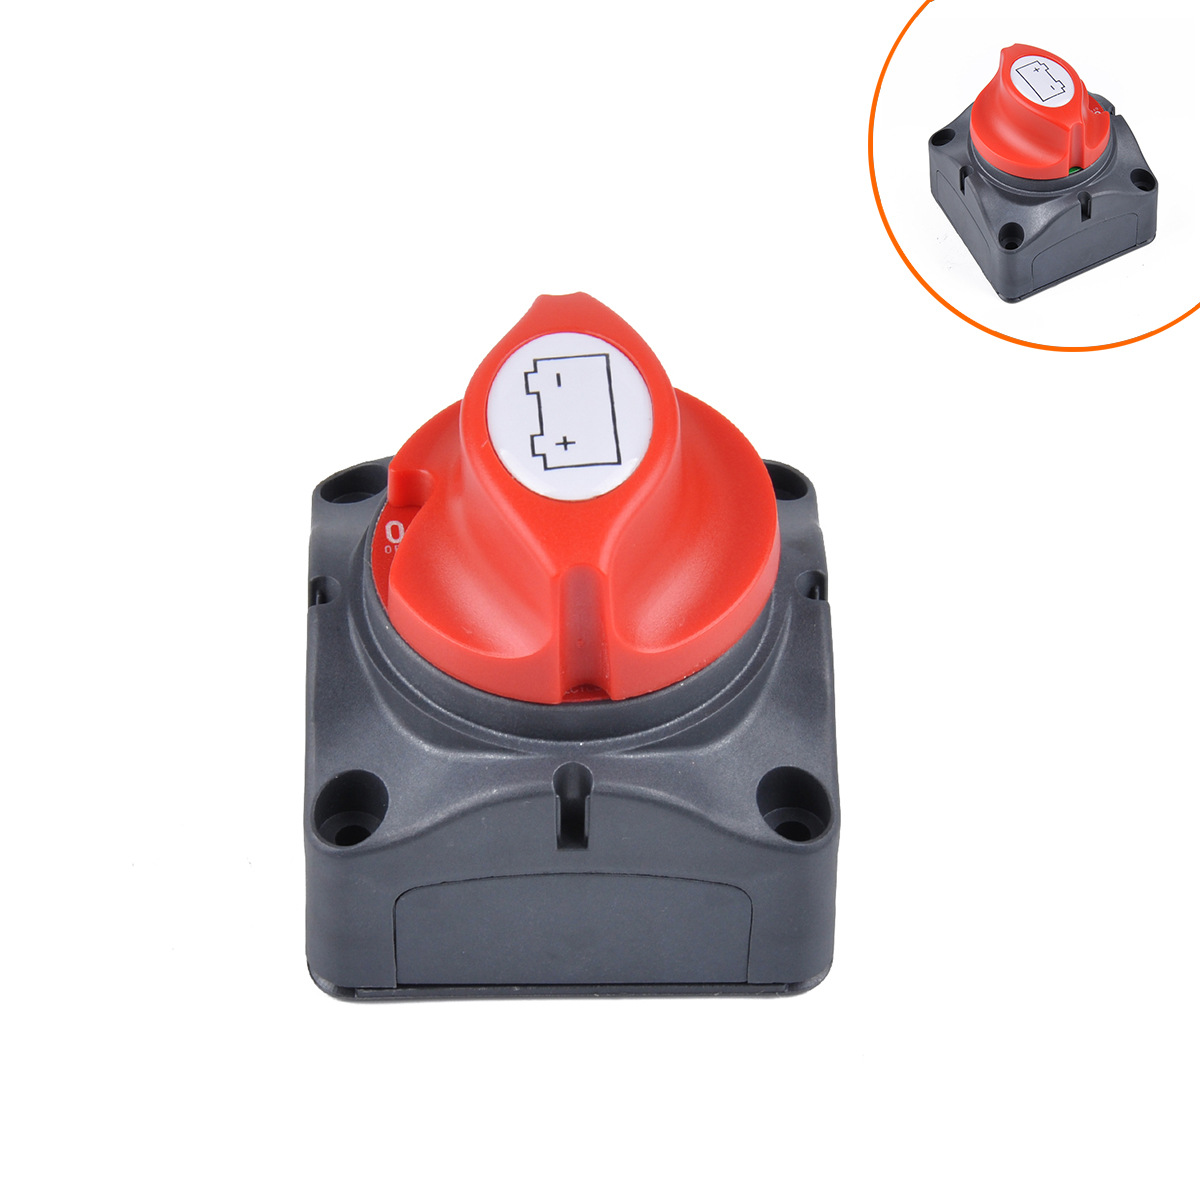 Car Battery Power-off Switch Yacht Truck Switch Large Current Breaker Switch Leak-Proof Electrical Switch